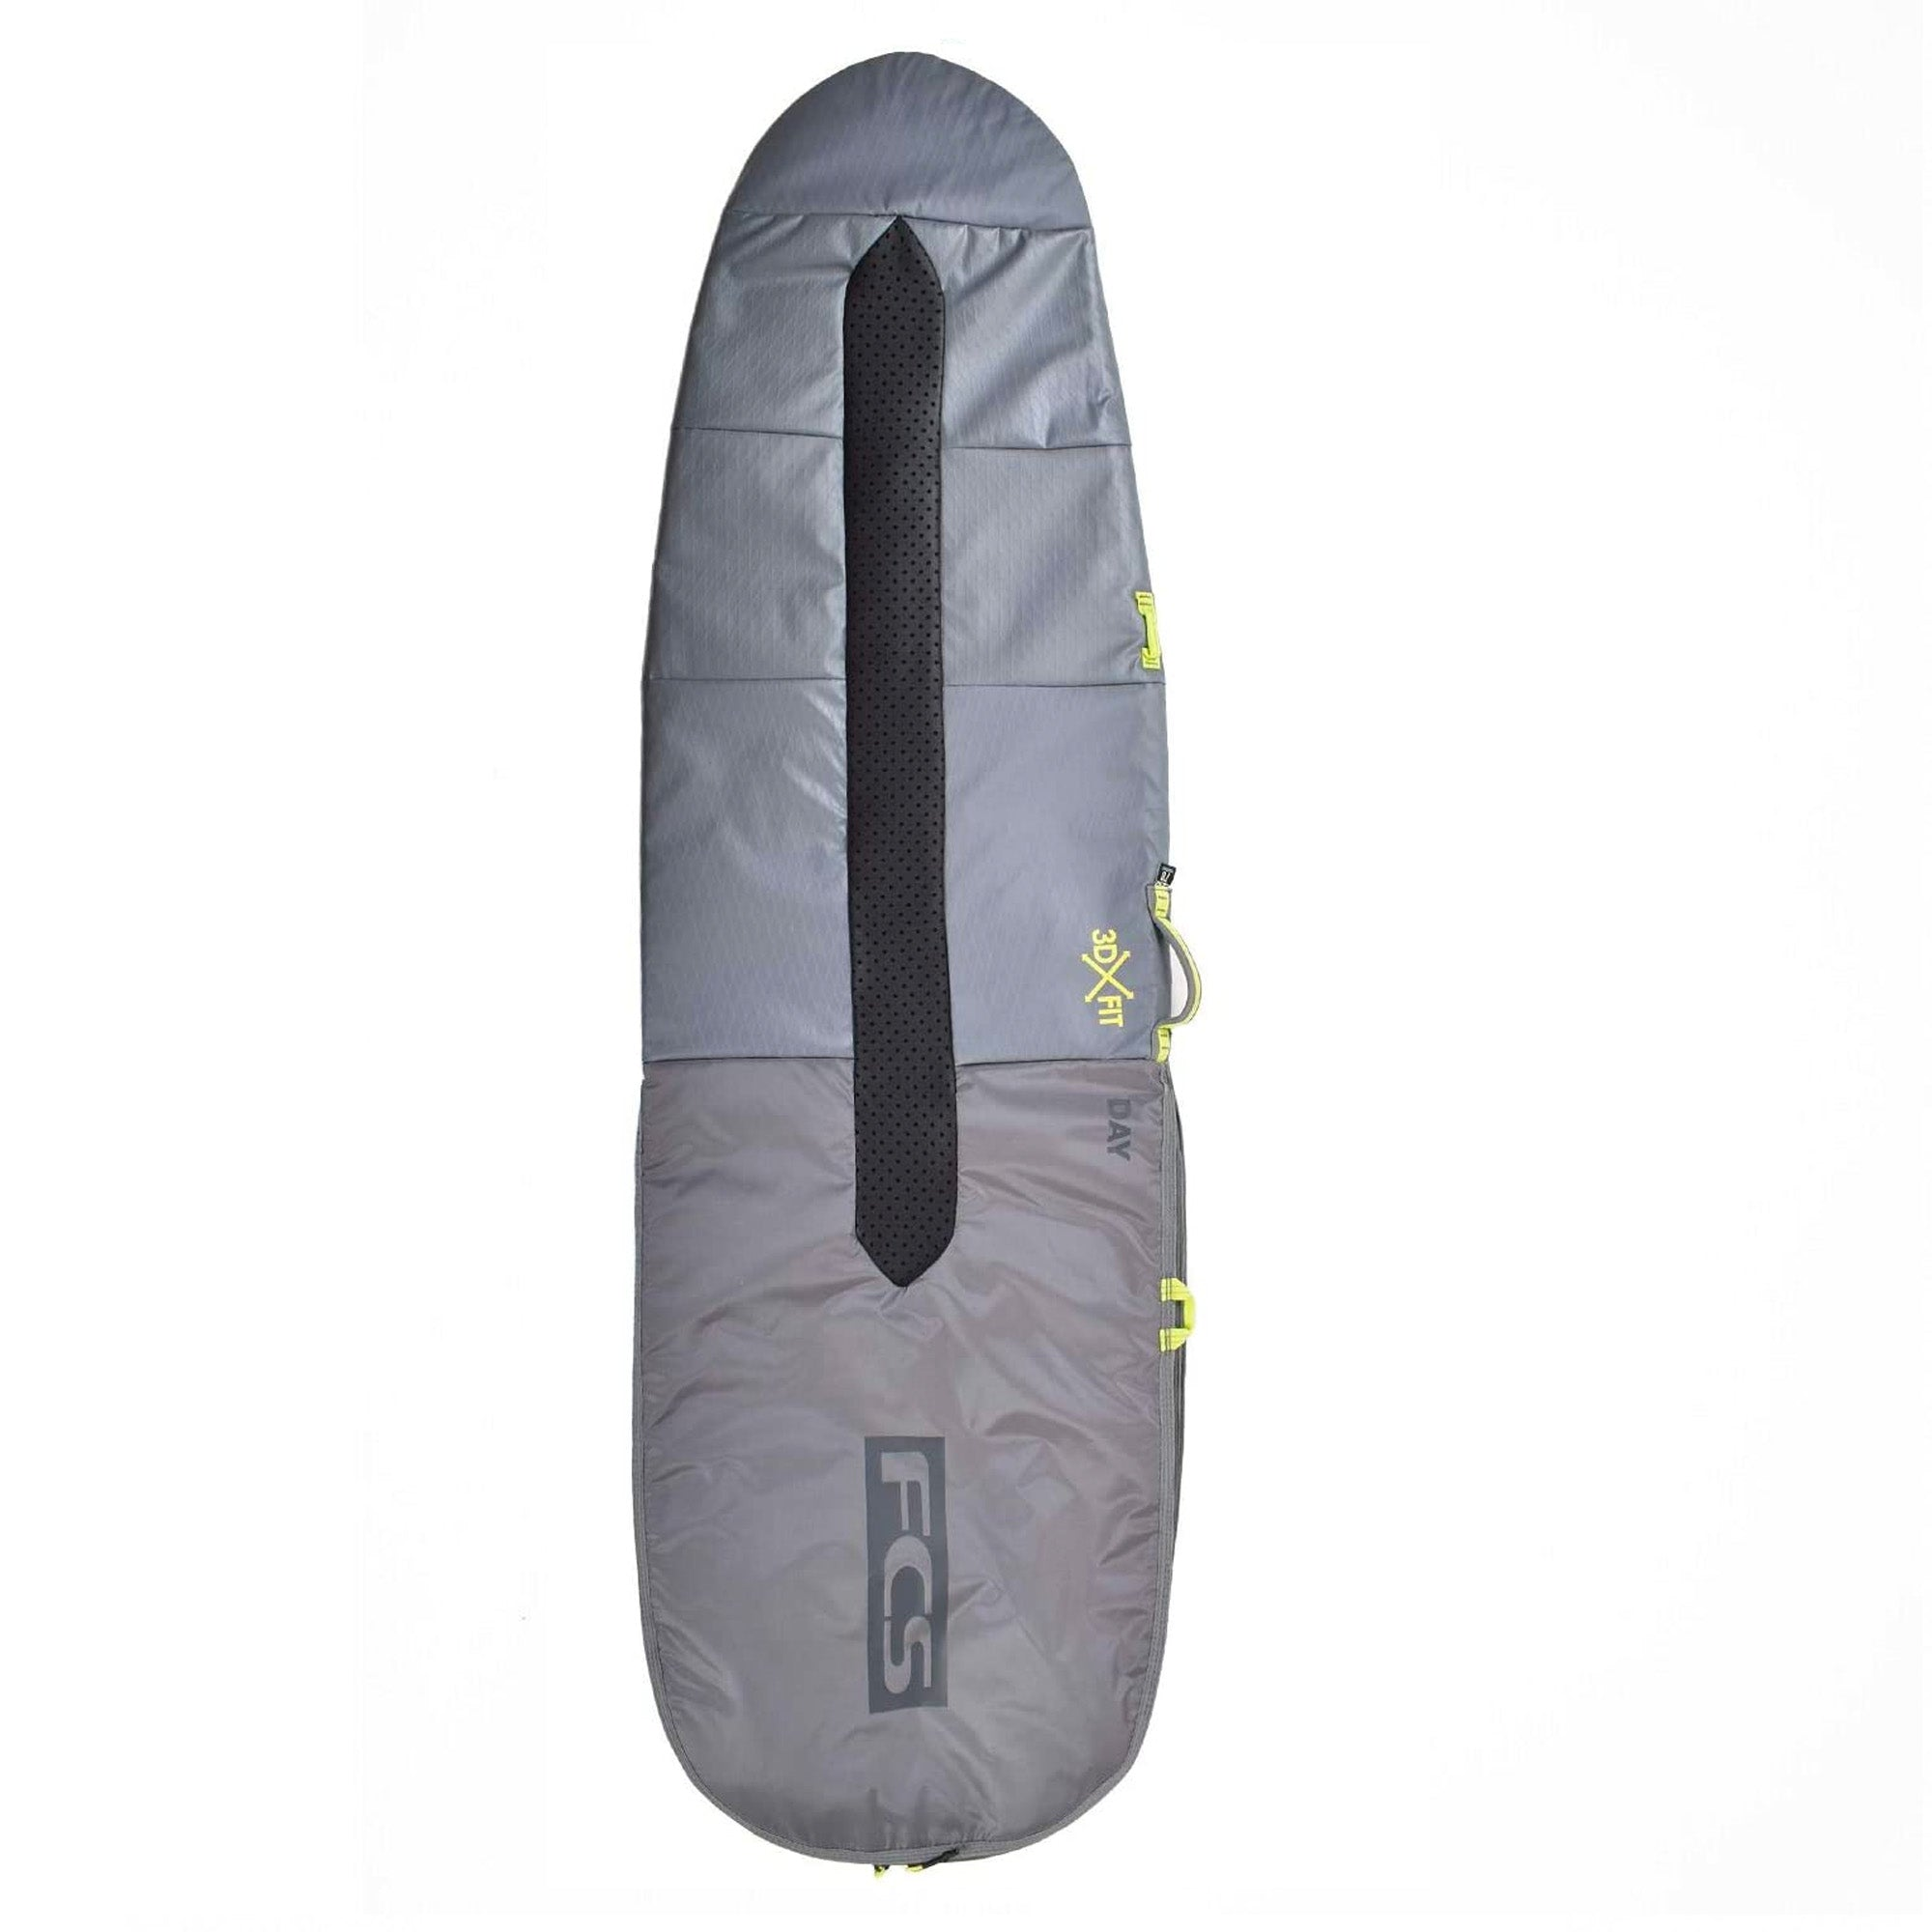 FCS 3DxFit Day Funboard Surfboard Bag